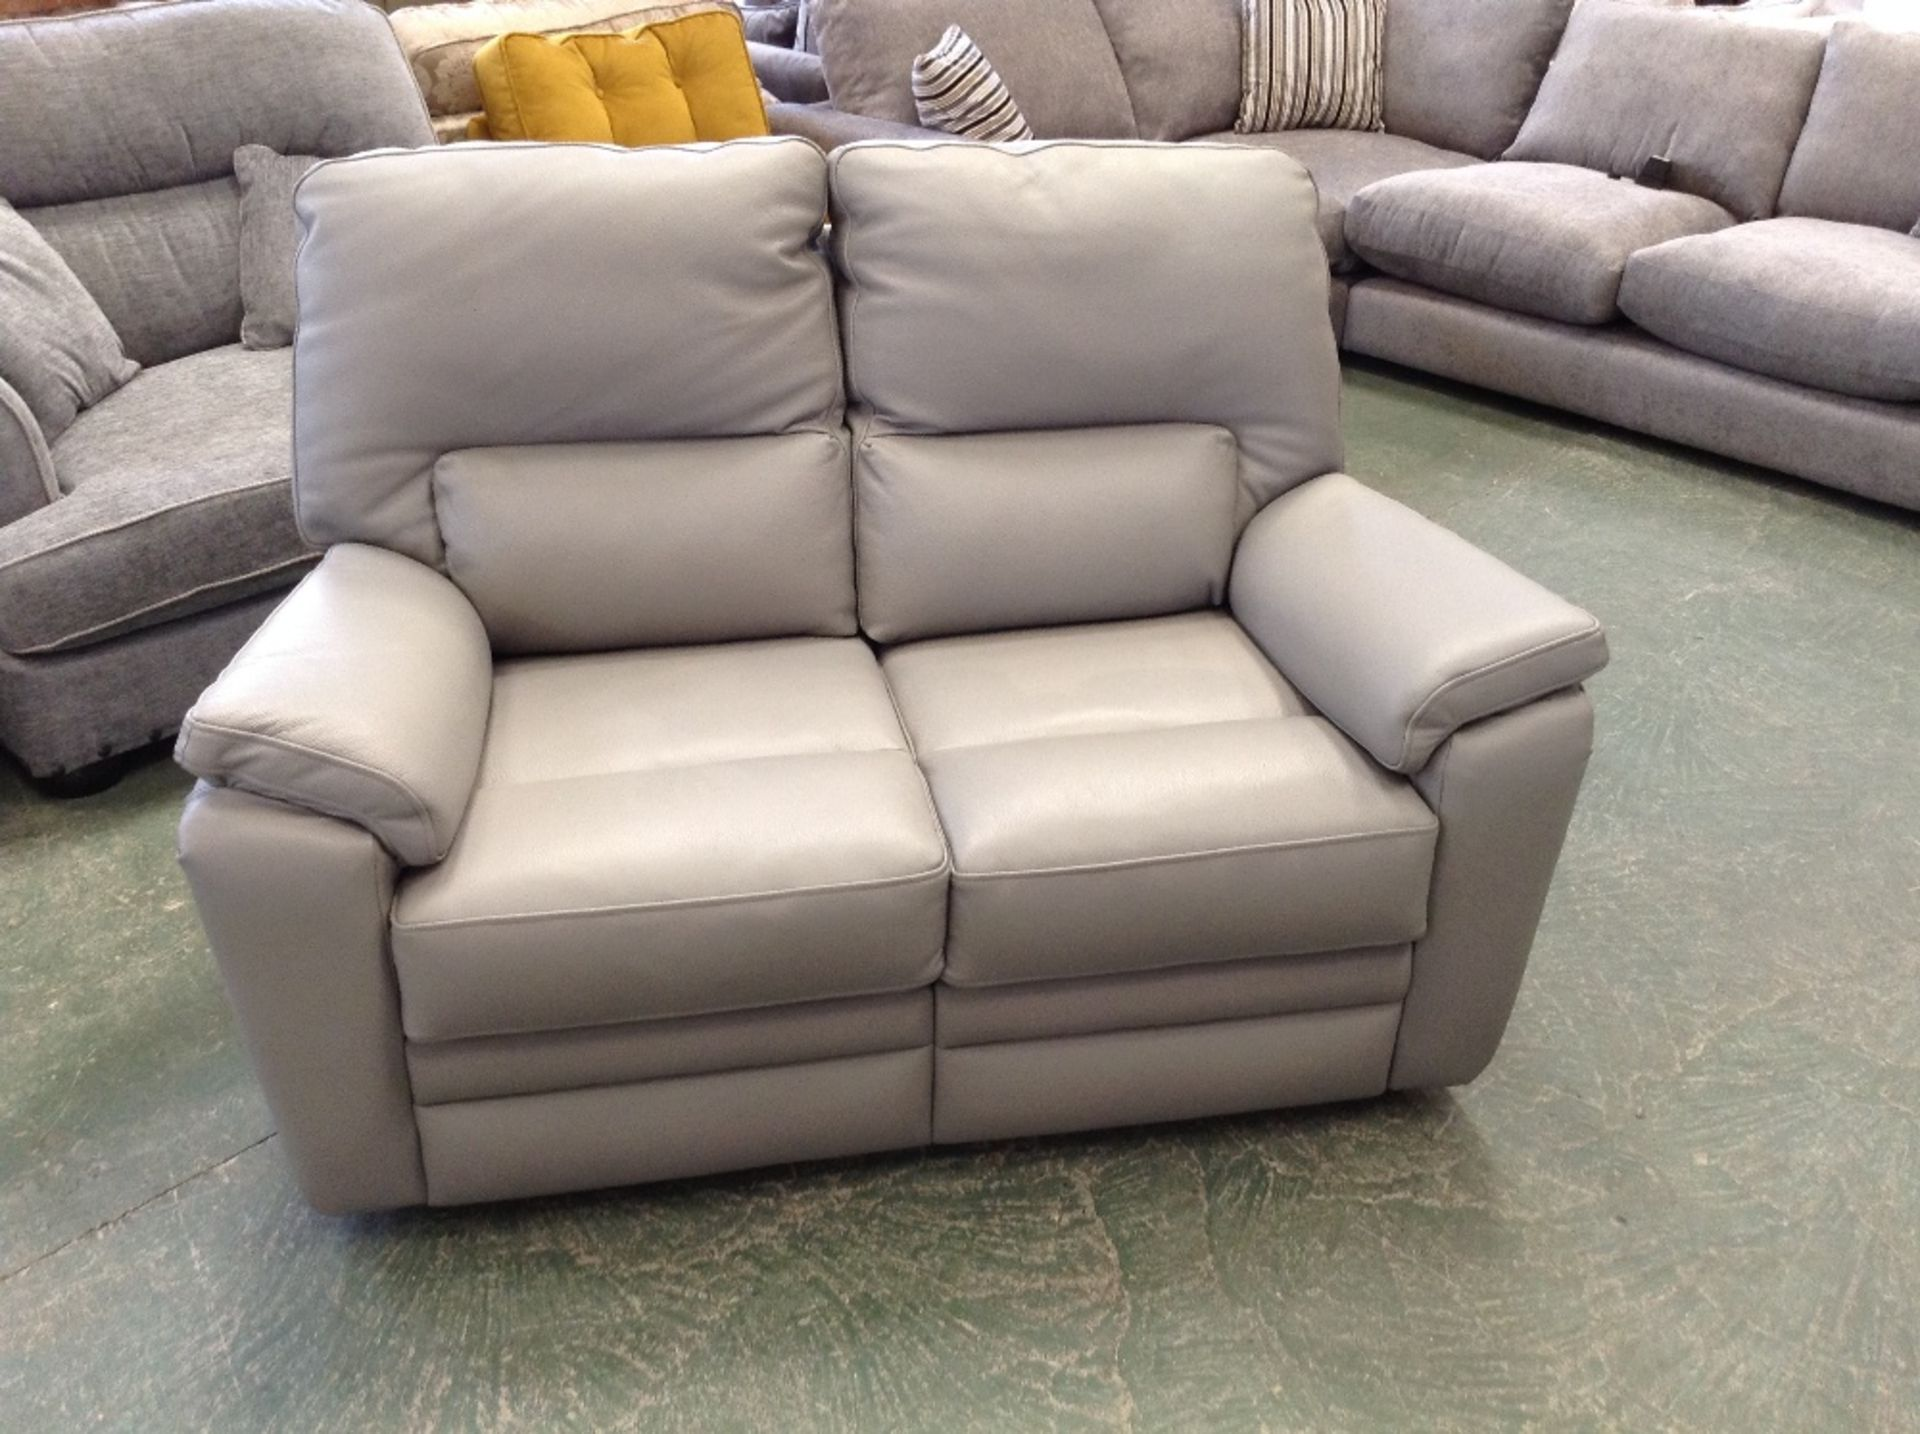 Lot 45 - GREY LEATHER HIGH BACK 2 SEATER SOFA (STITCHING LO